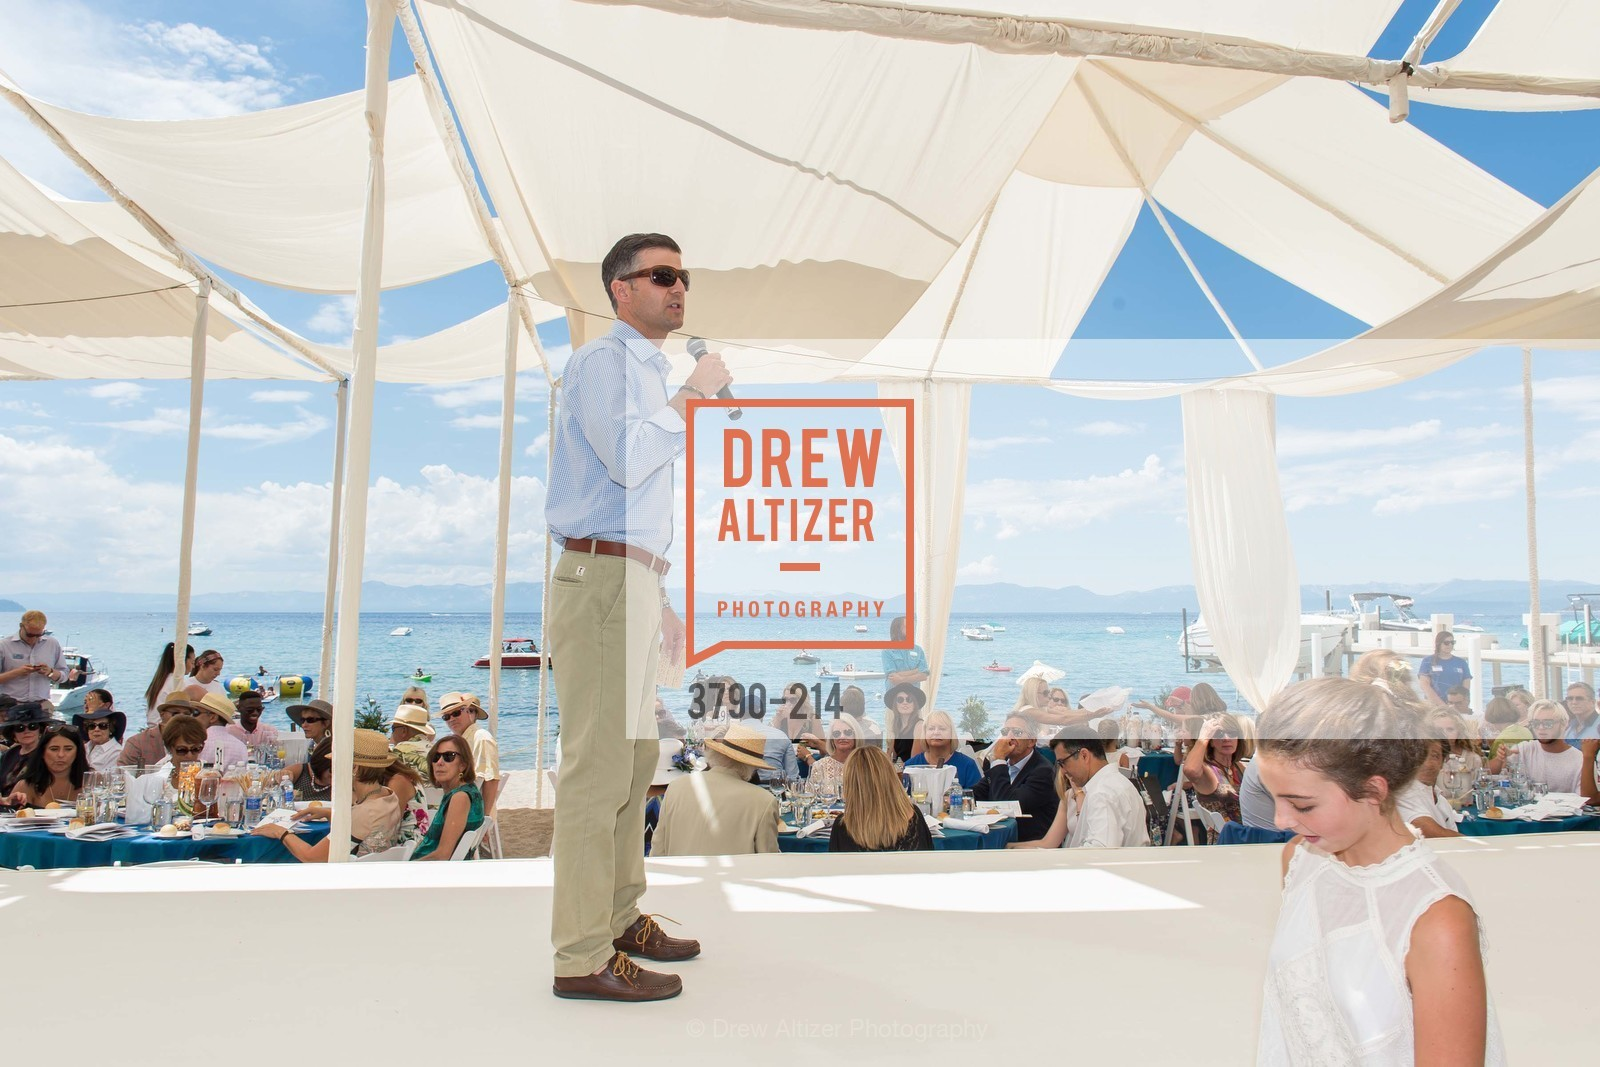 Ash Daggs, Saks Fifth Avenue and The League to Save Lake Tahoe Present Fashion on the Lake, Private Residence, August 1st, 2015,Drew Altizer, Drew Altizer Photography, full-service agency, private events, San Francisco photographer, photographer california